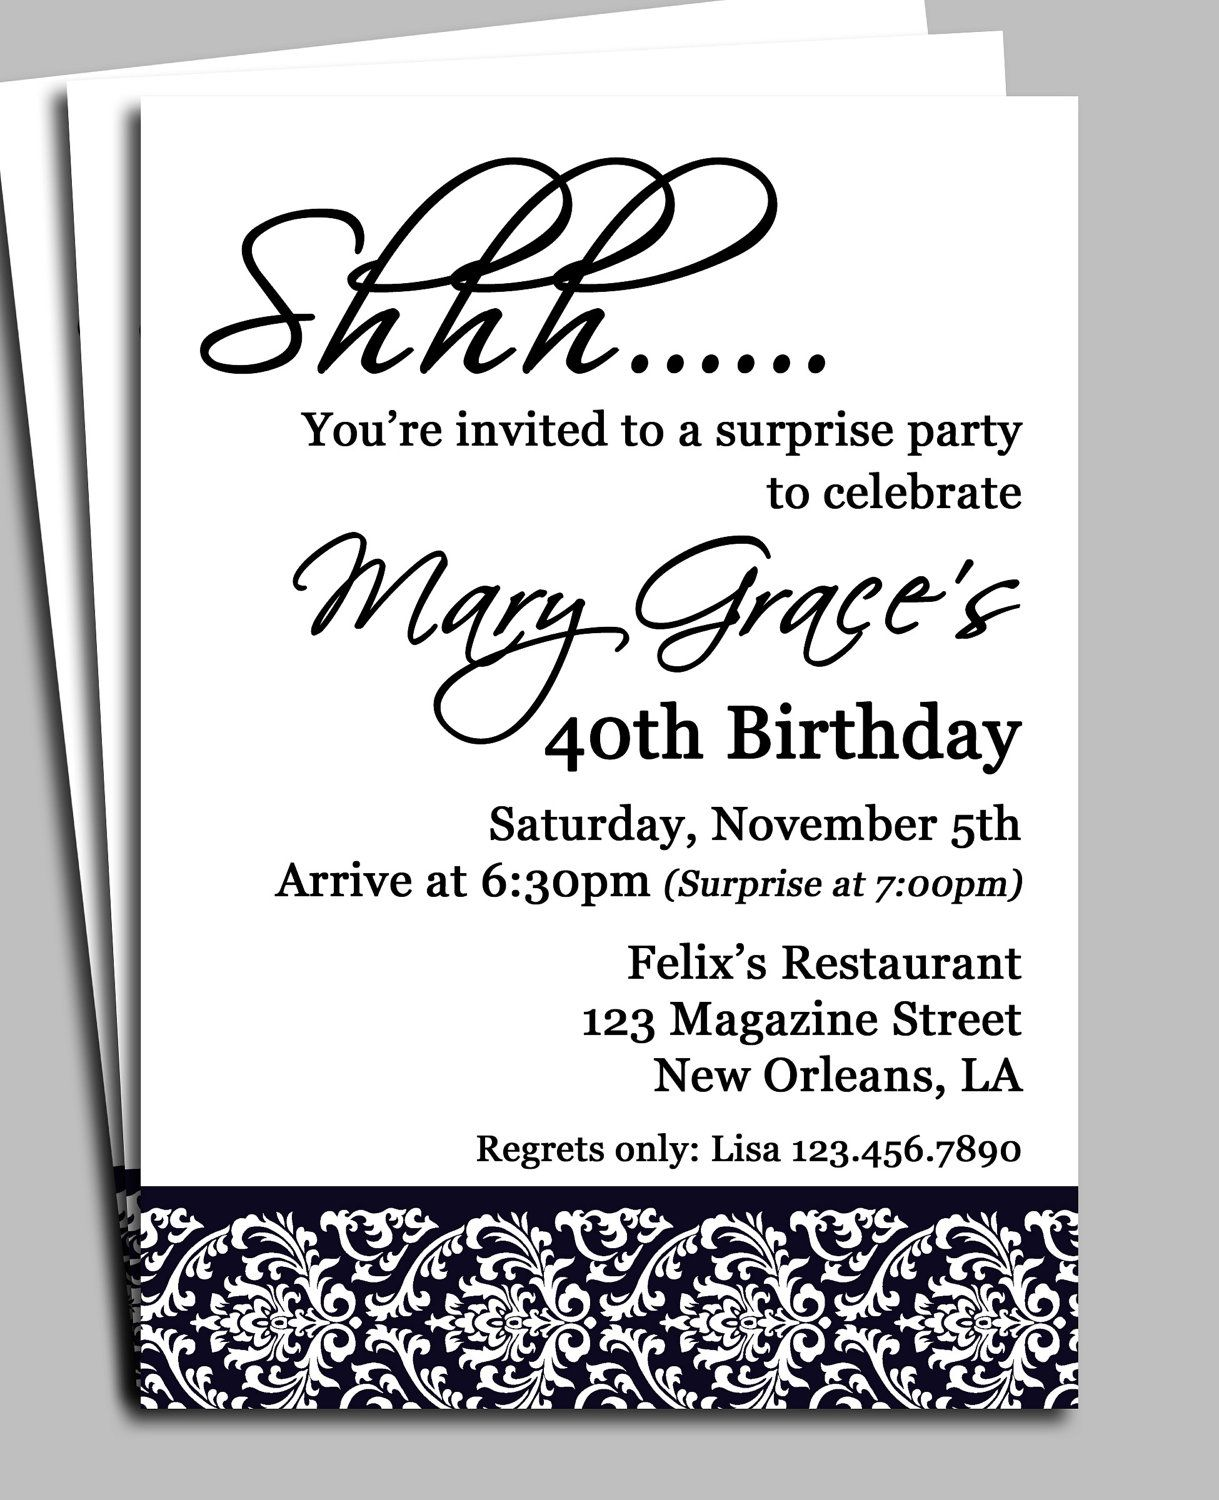 Invitation for surprise birthday party wording h pinterest invitation for surprise birthday party wording filmwisefo